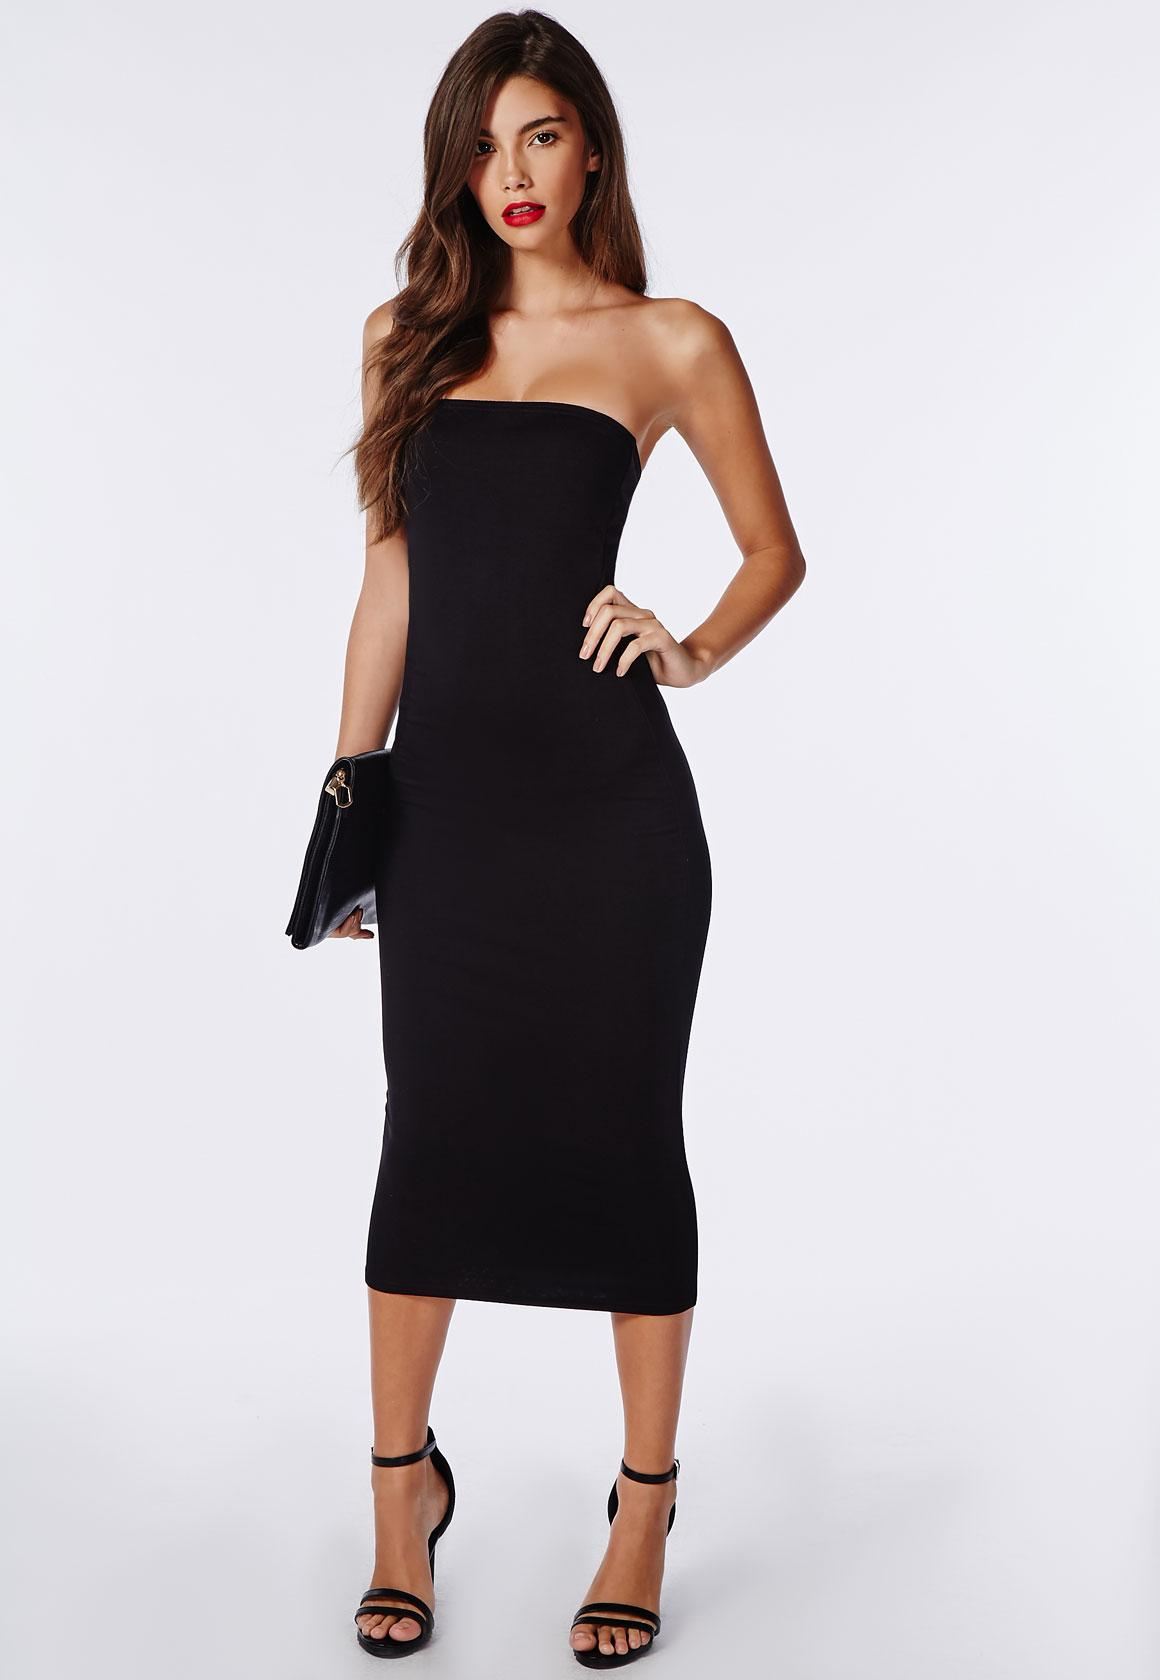 Strapless Jersey Bodycon Midi Dress Black - Dresses - Bodycon ...